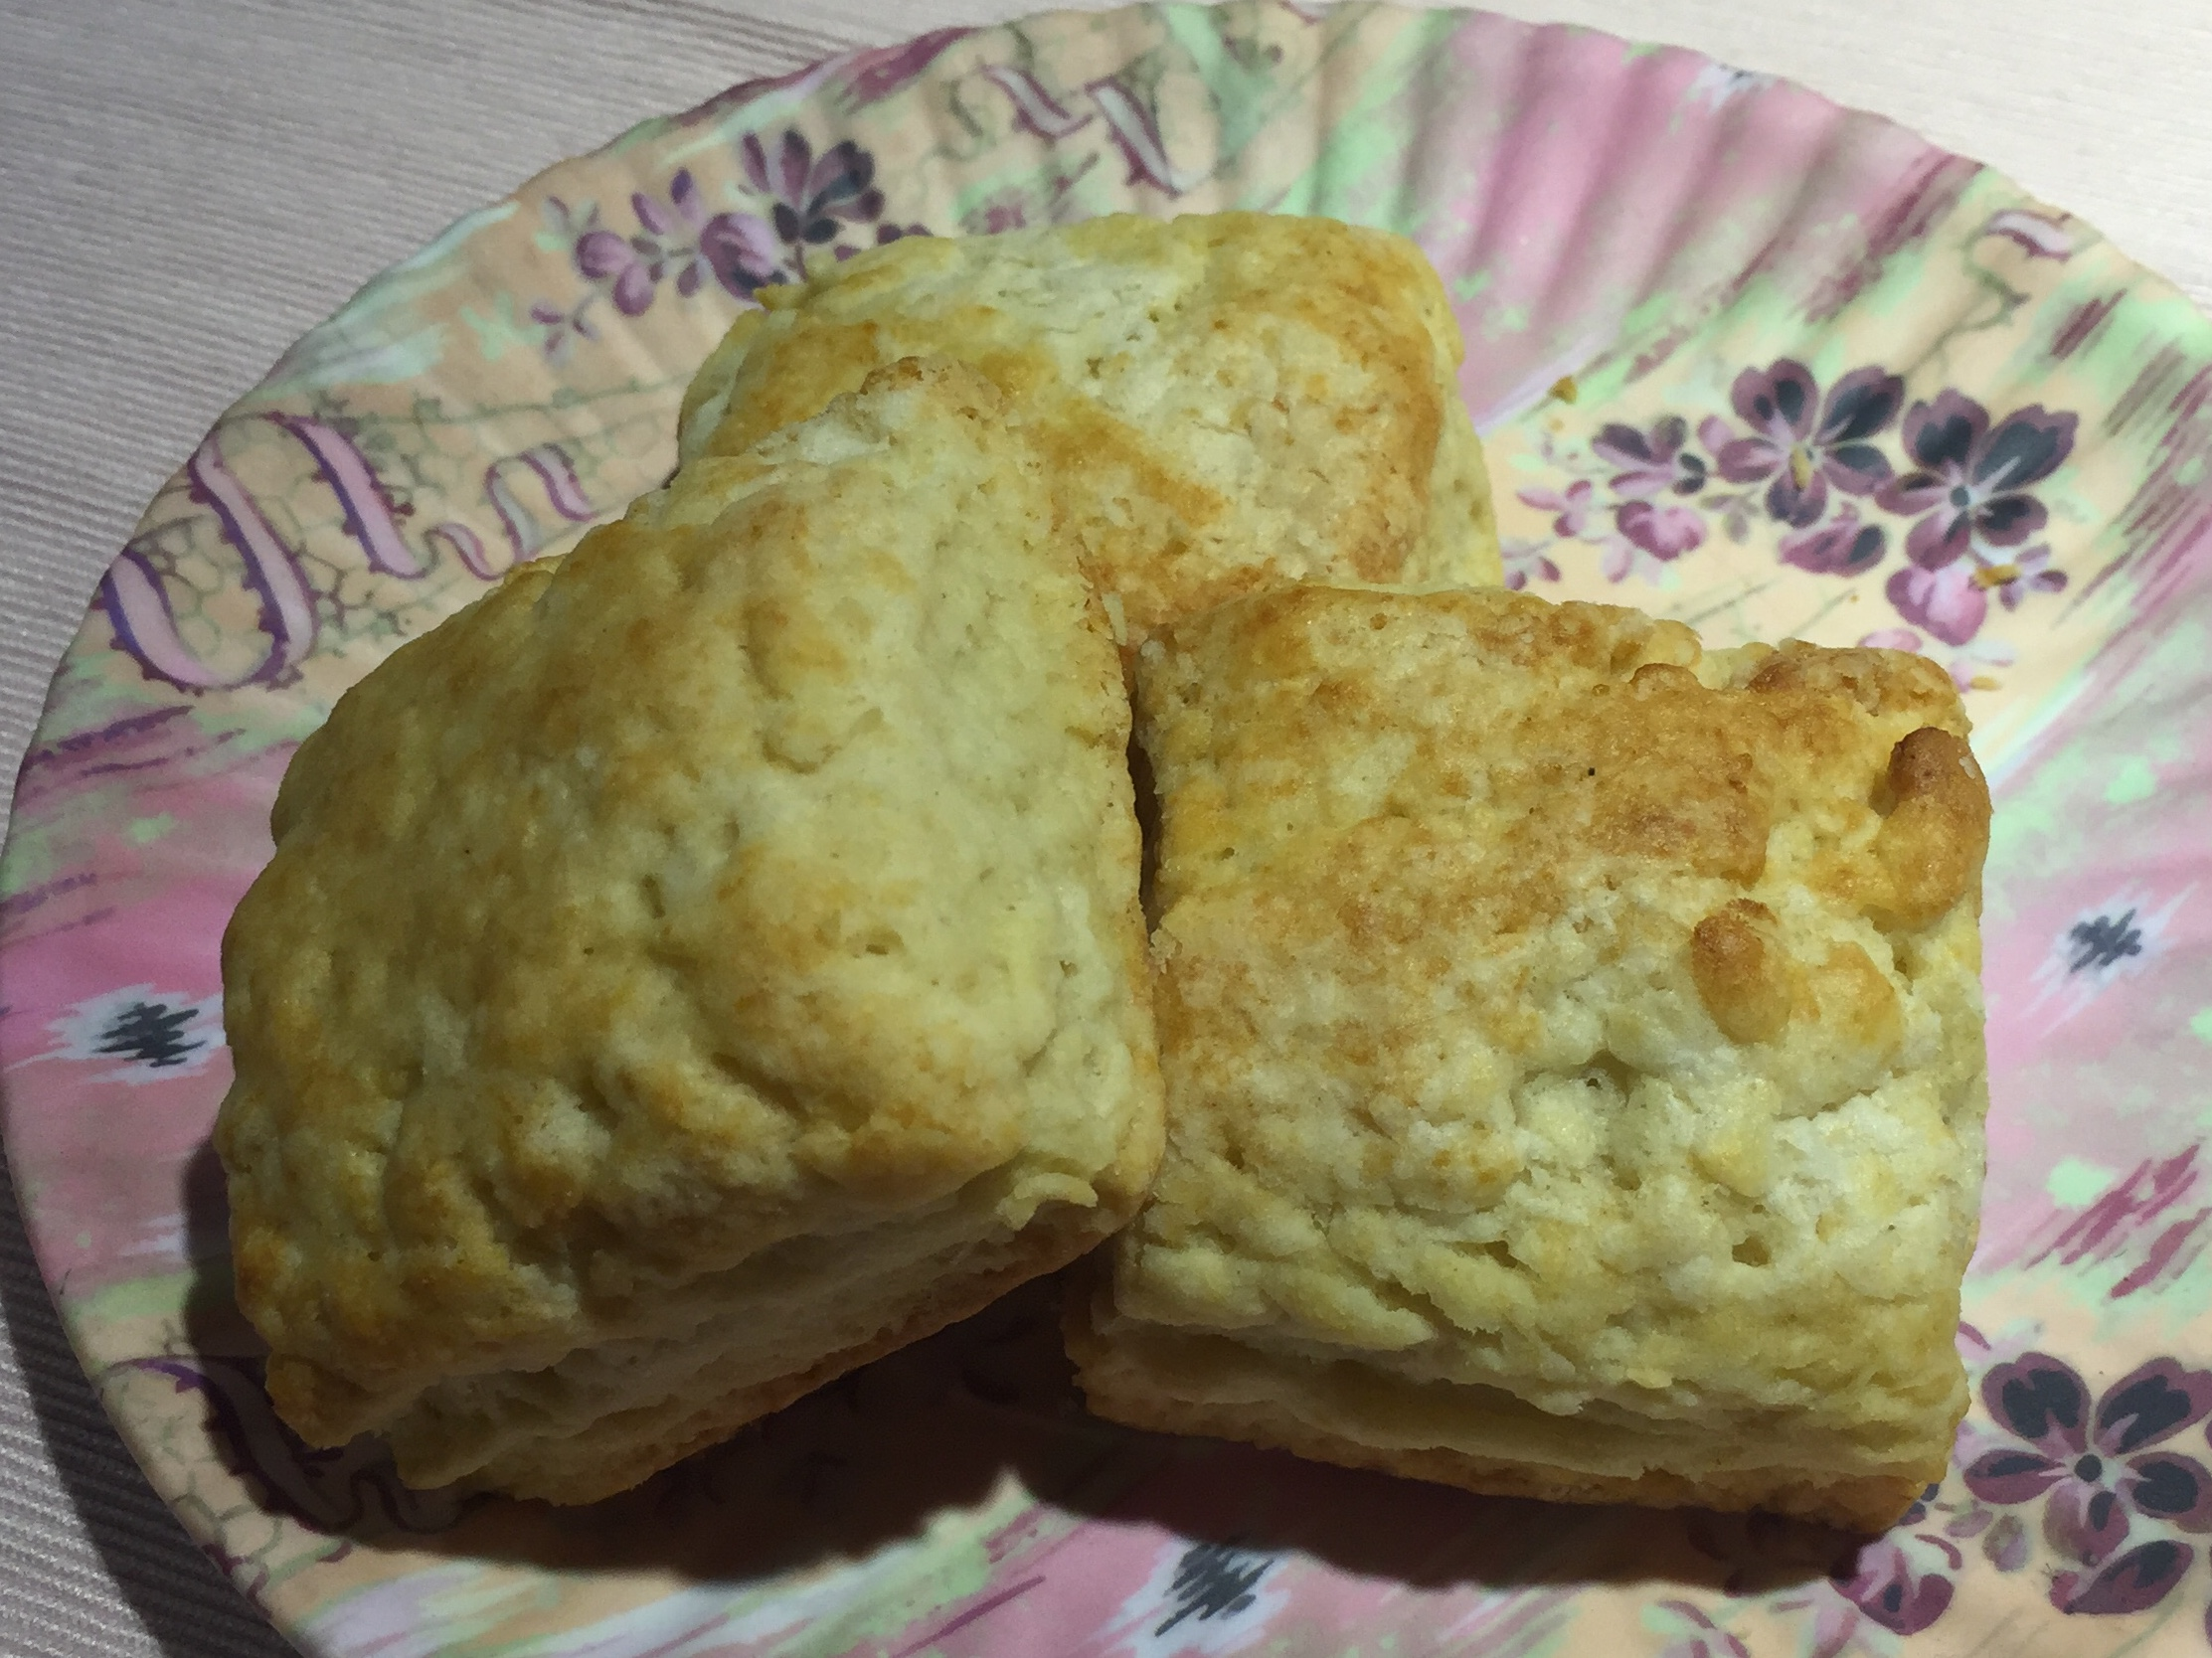 Biscuits - these are basic - go ahead and have fun making these.